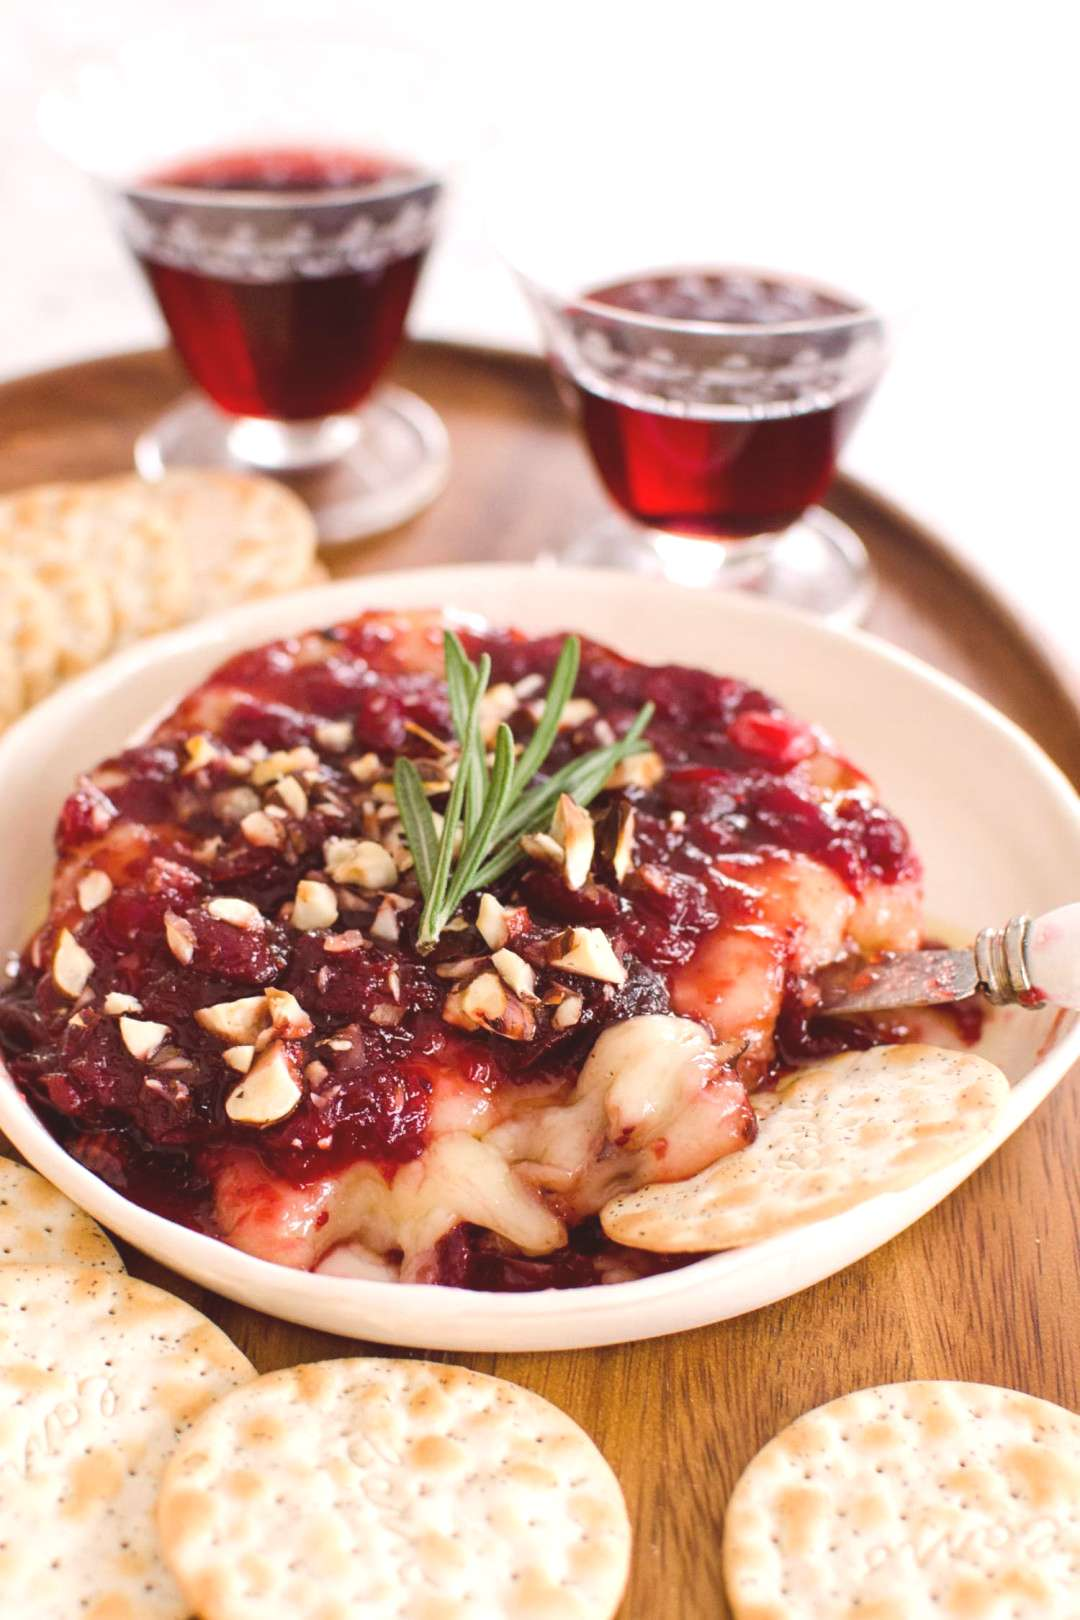 Holiday Appetizer Recipe Baked Brie with Cranberry Sauce, Baking Holiday Appetizers Holiday Appeti